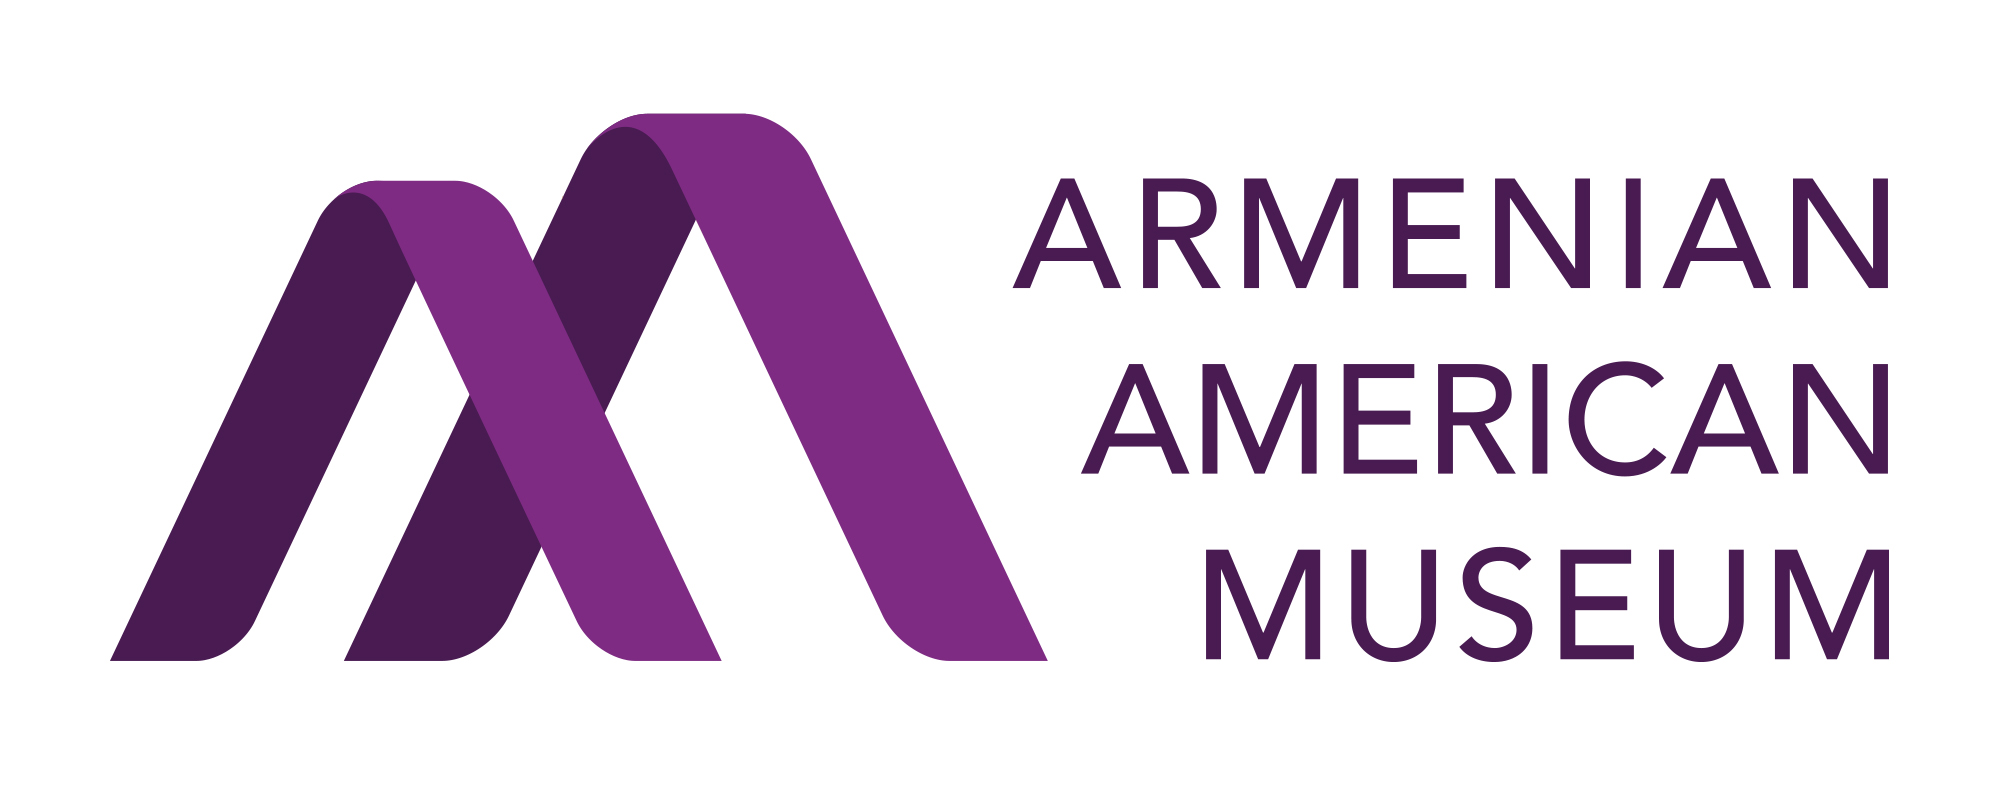 Armenian American Museum Logo Press